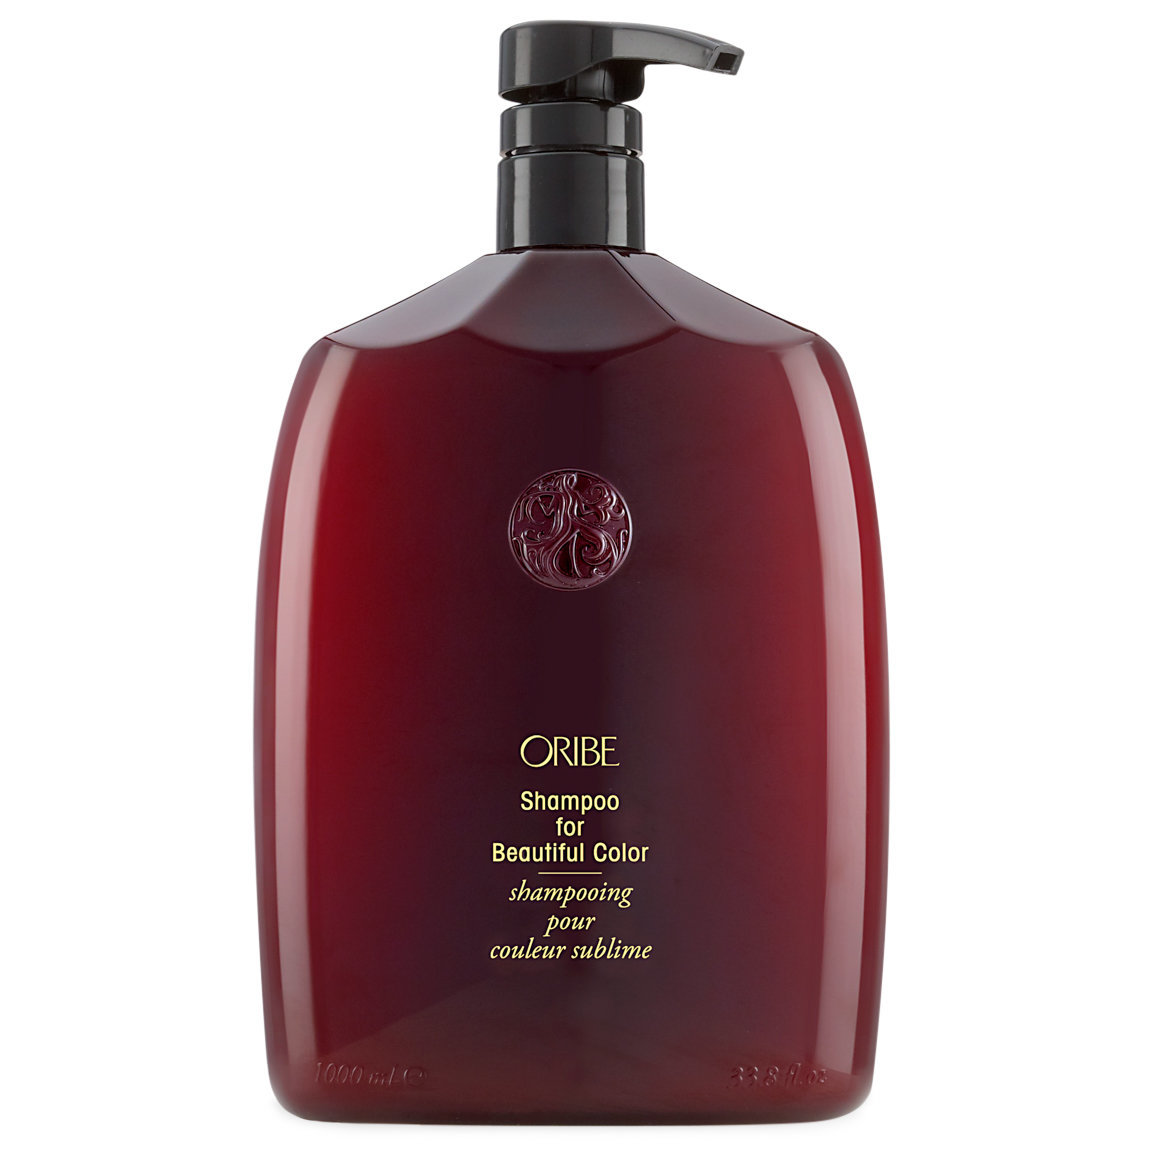 Oribe Shampoo for Beautiful Color 1 L alternative view 1 - product swatch.